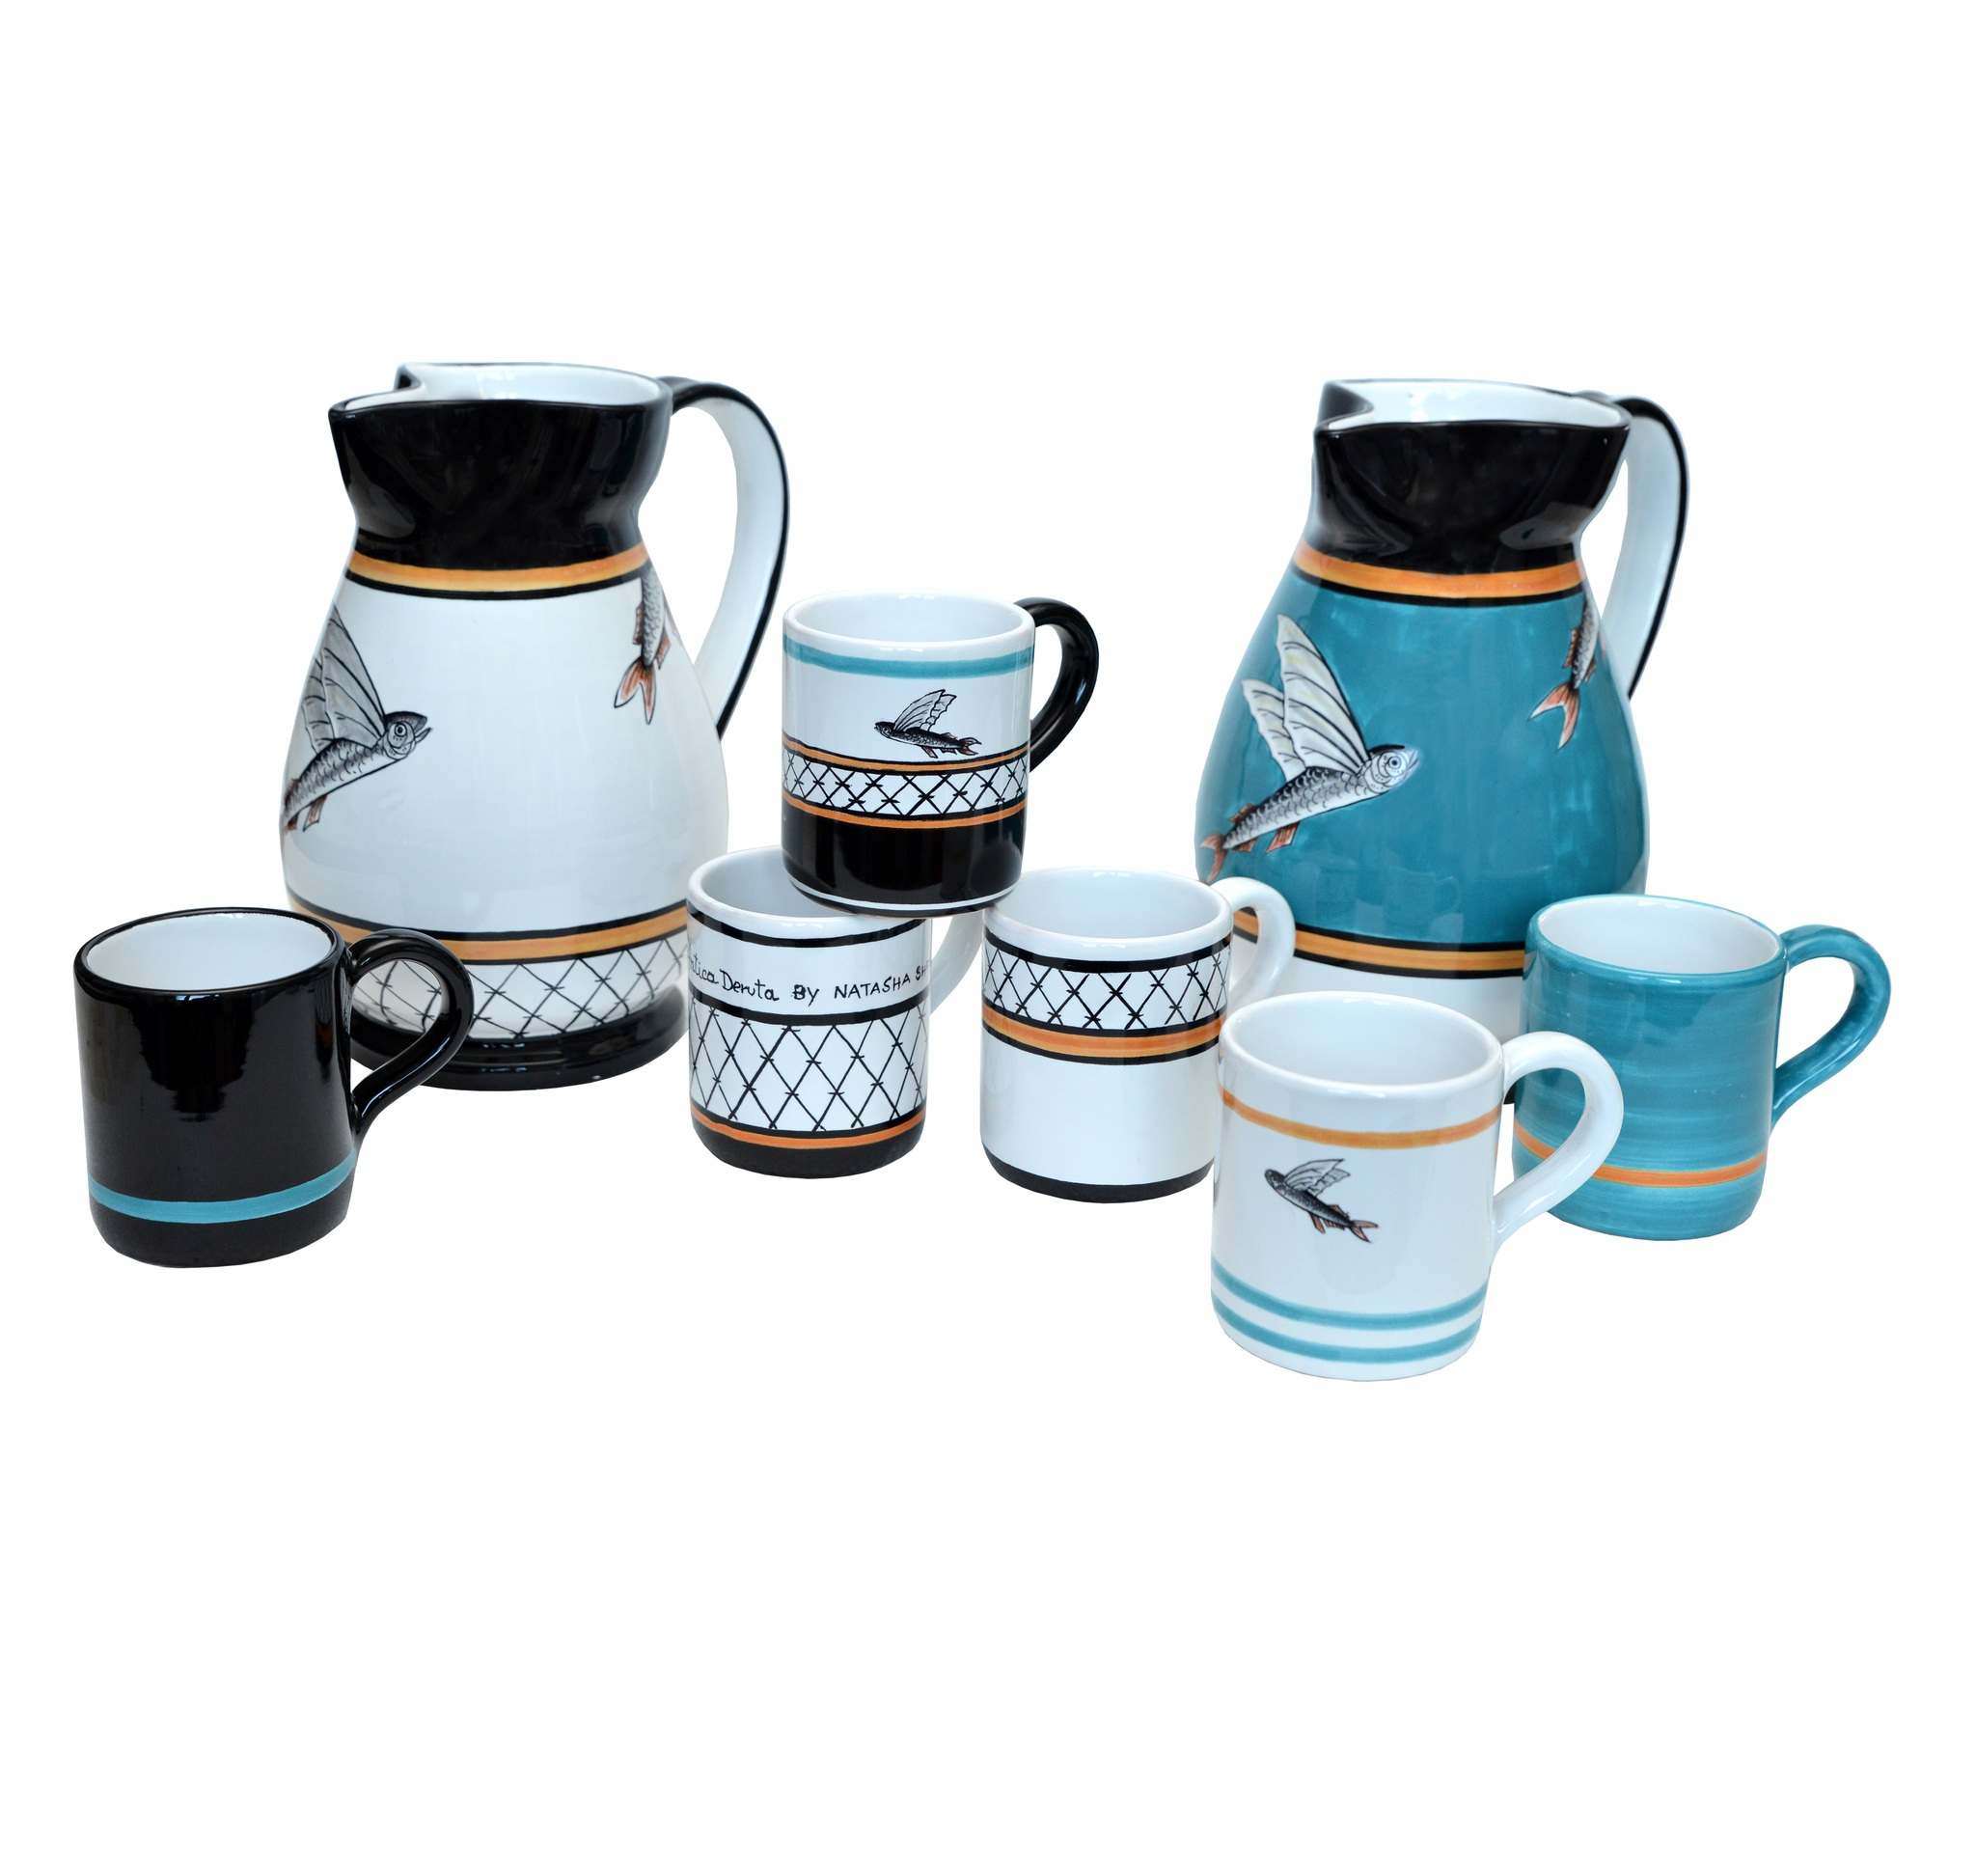 Set 1 pitcher & 4 mugs Flying Fish collection